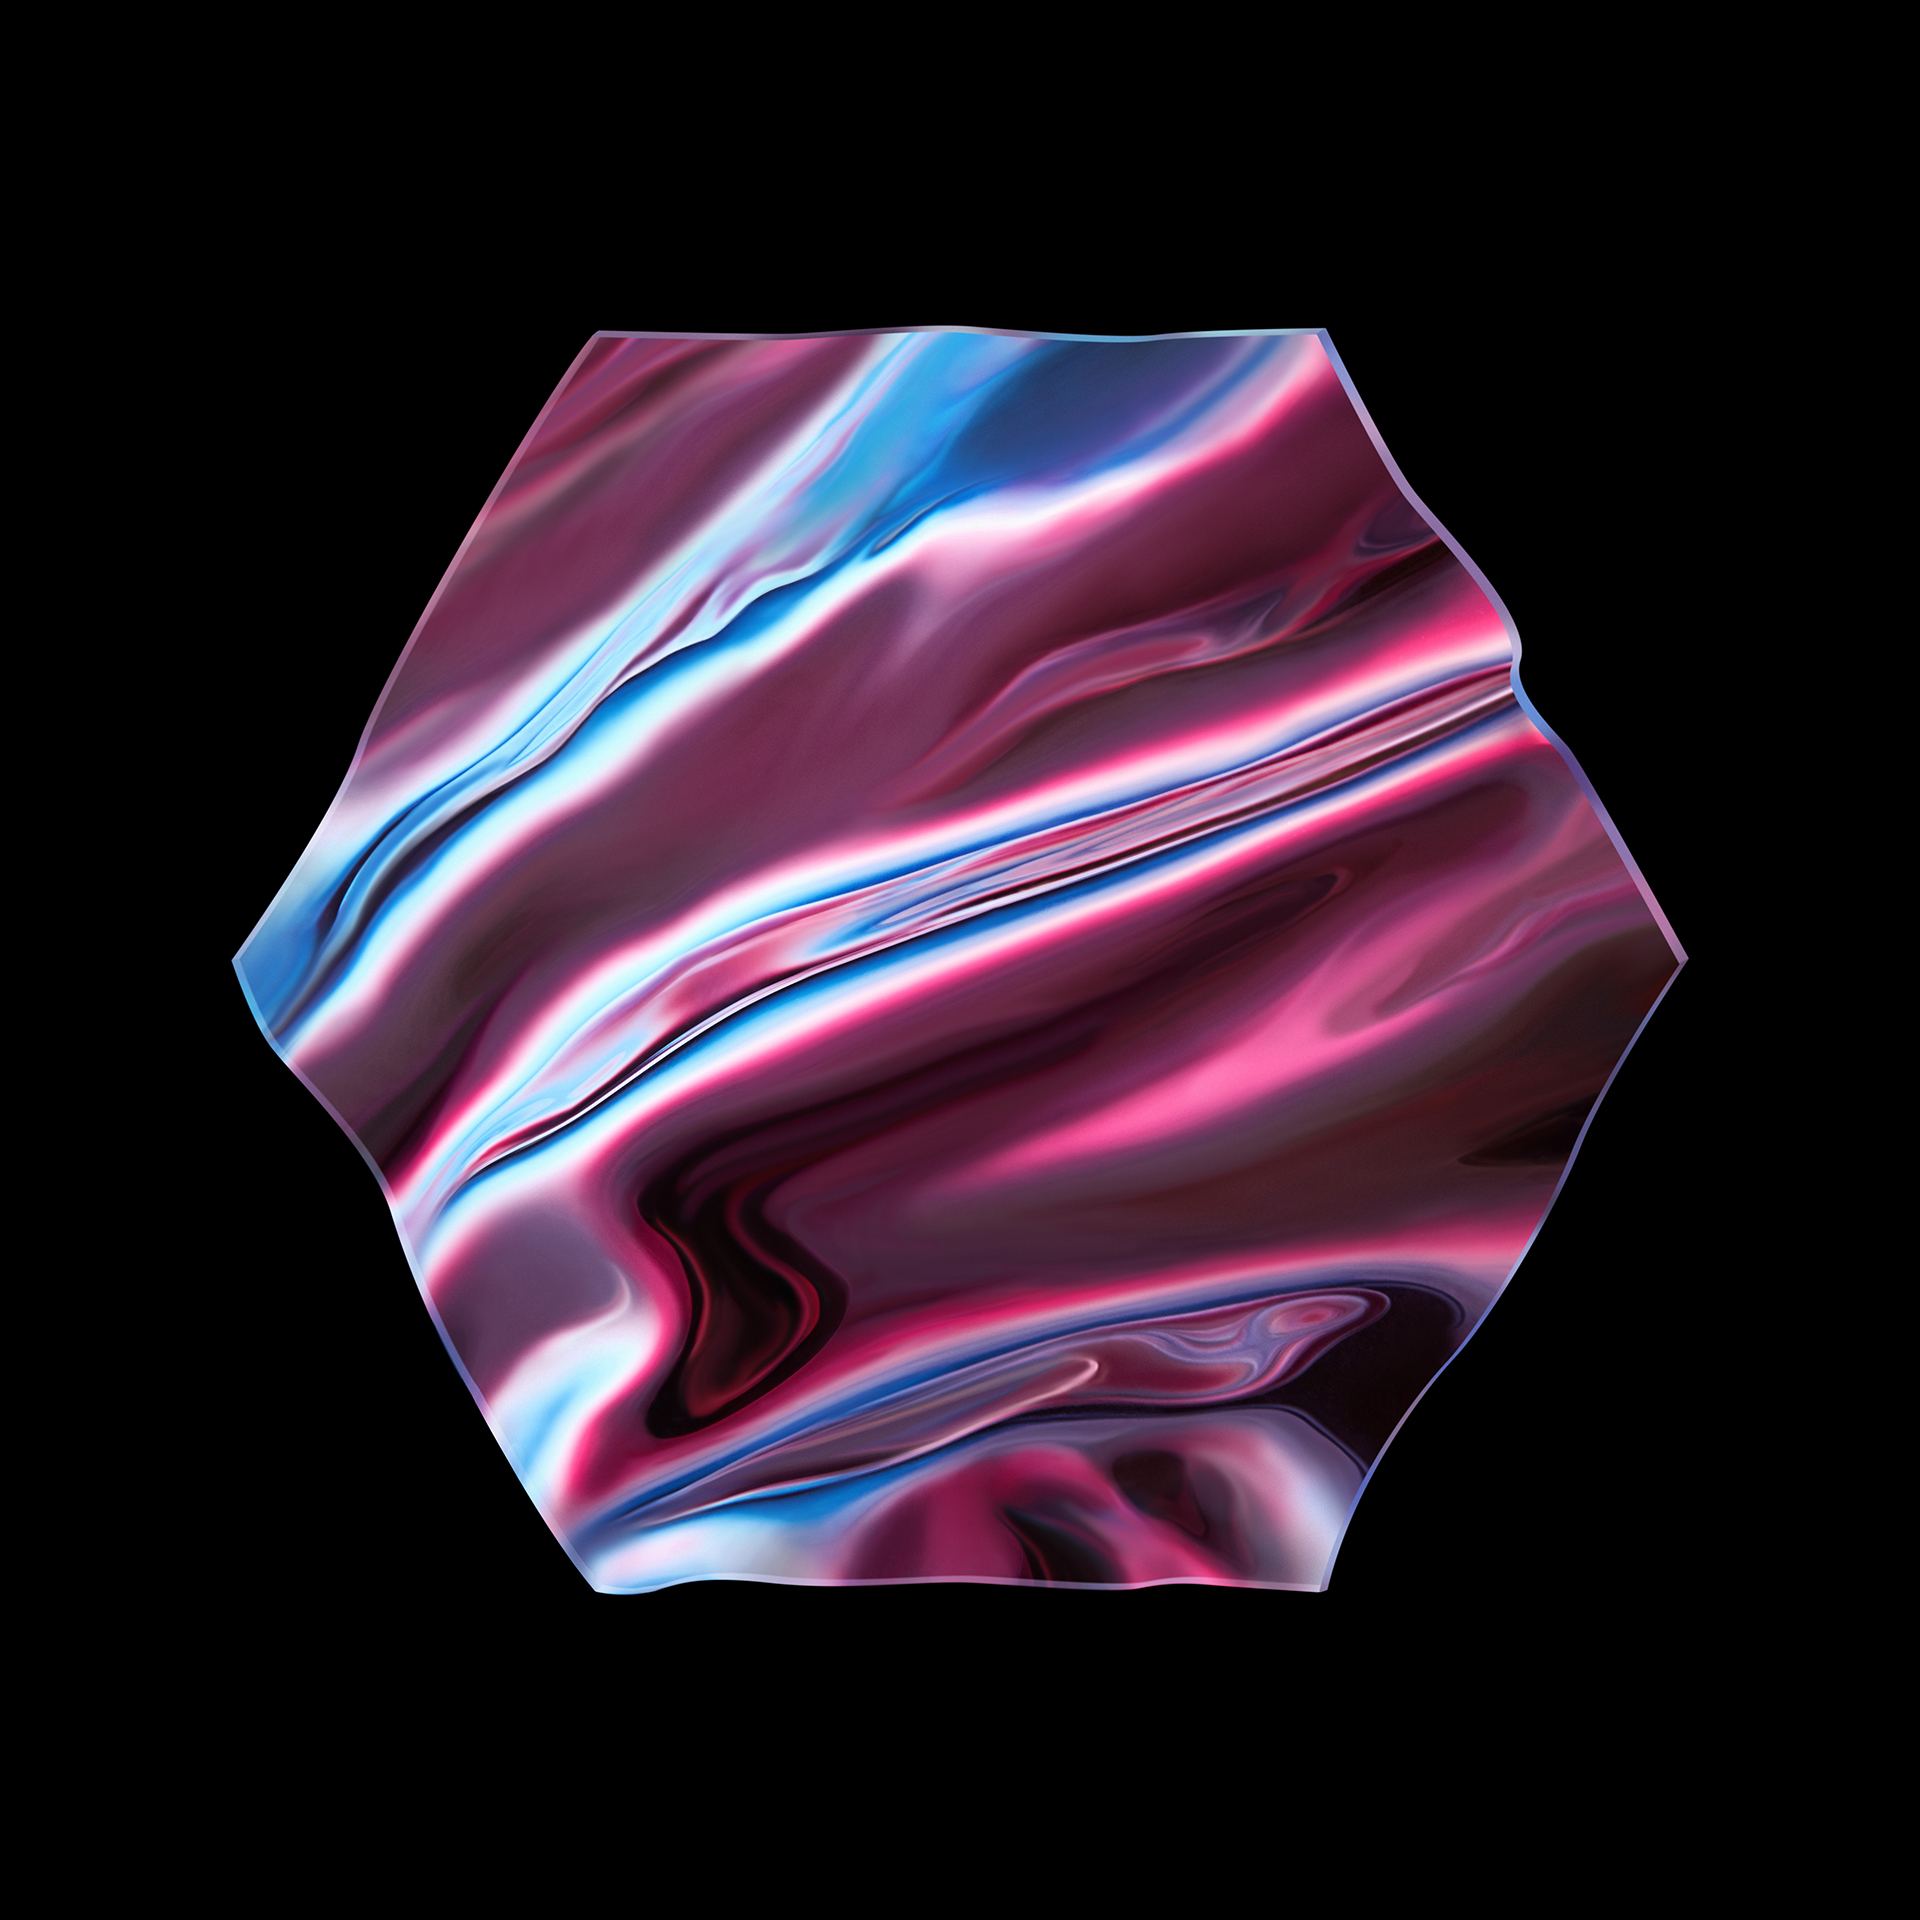 wavy-shape-melted-plastic-still-life-photographer-london-hexagon